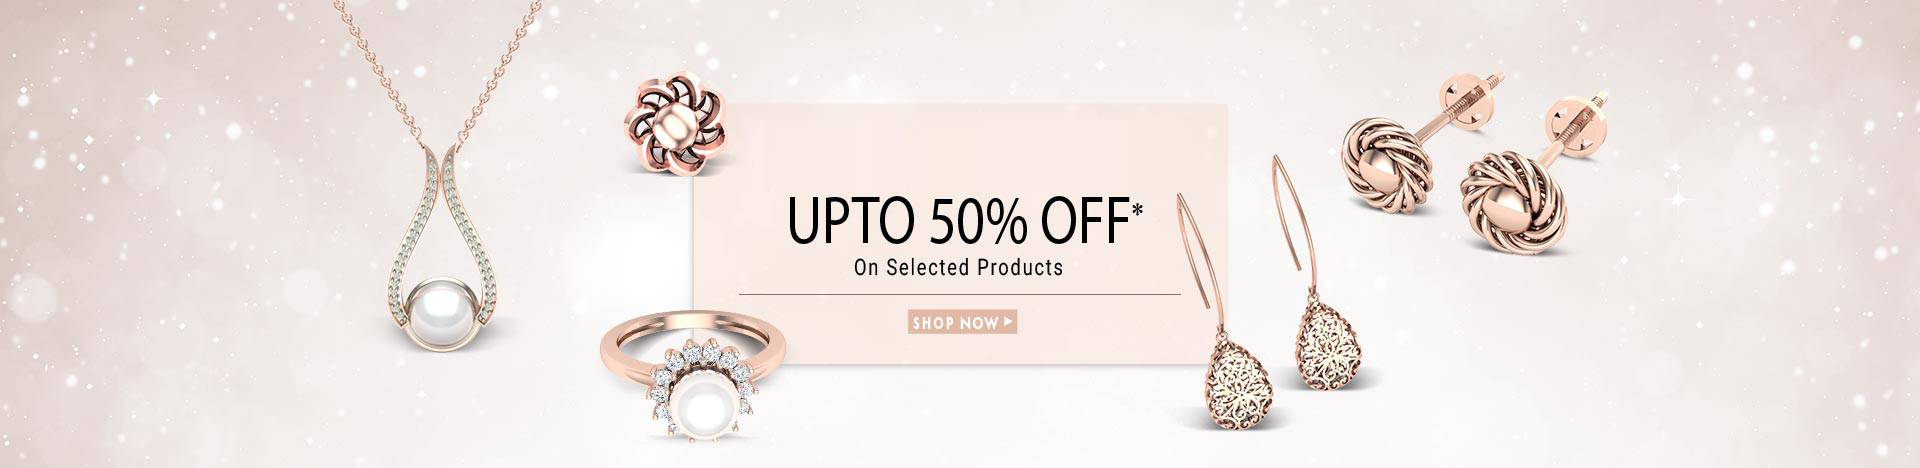 Diwali Offer Dishis Jewels